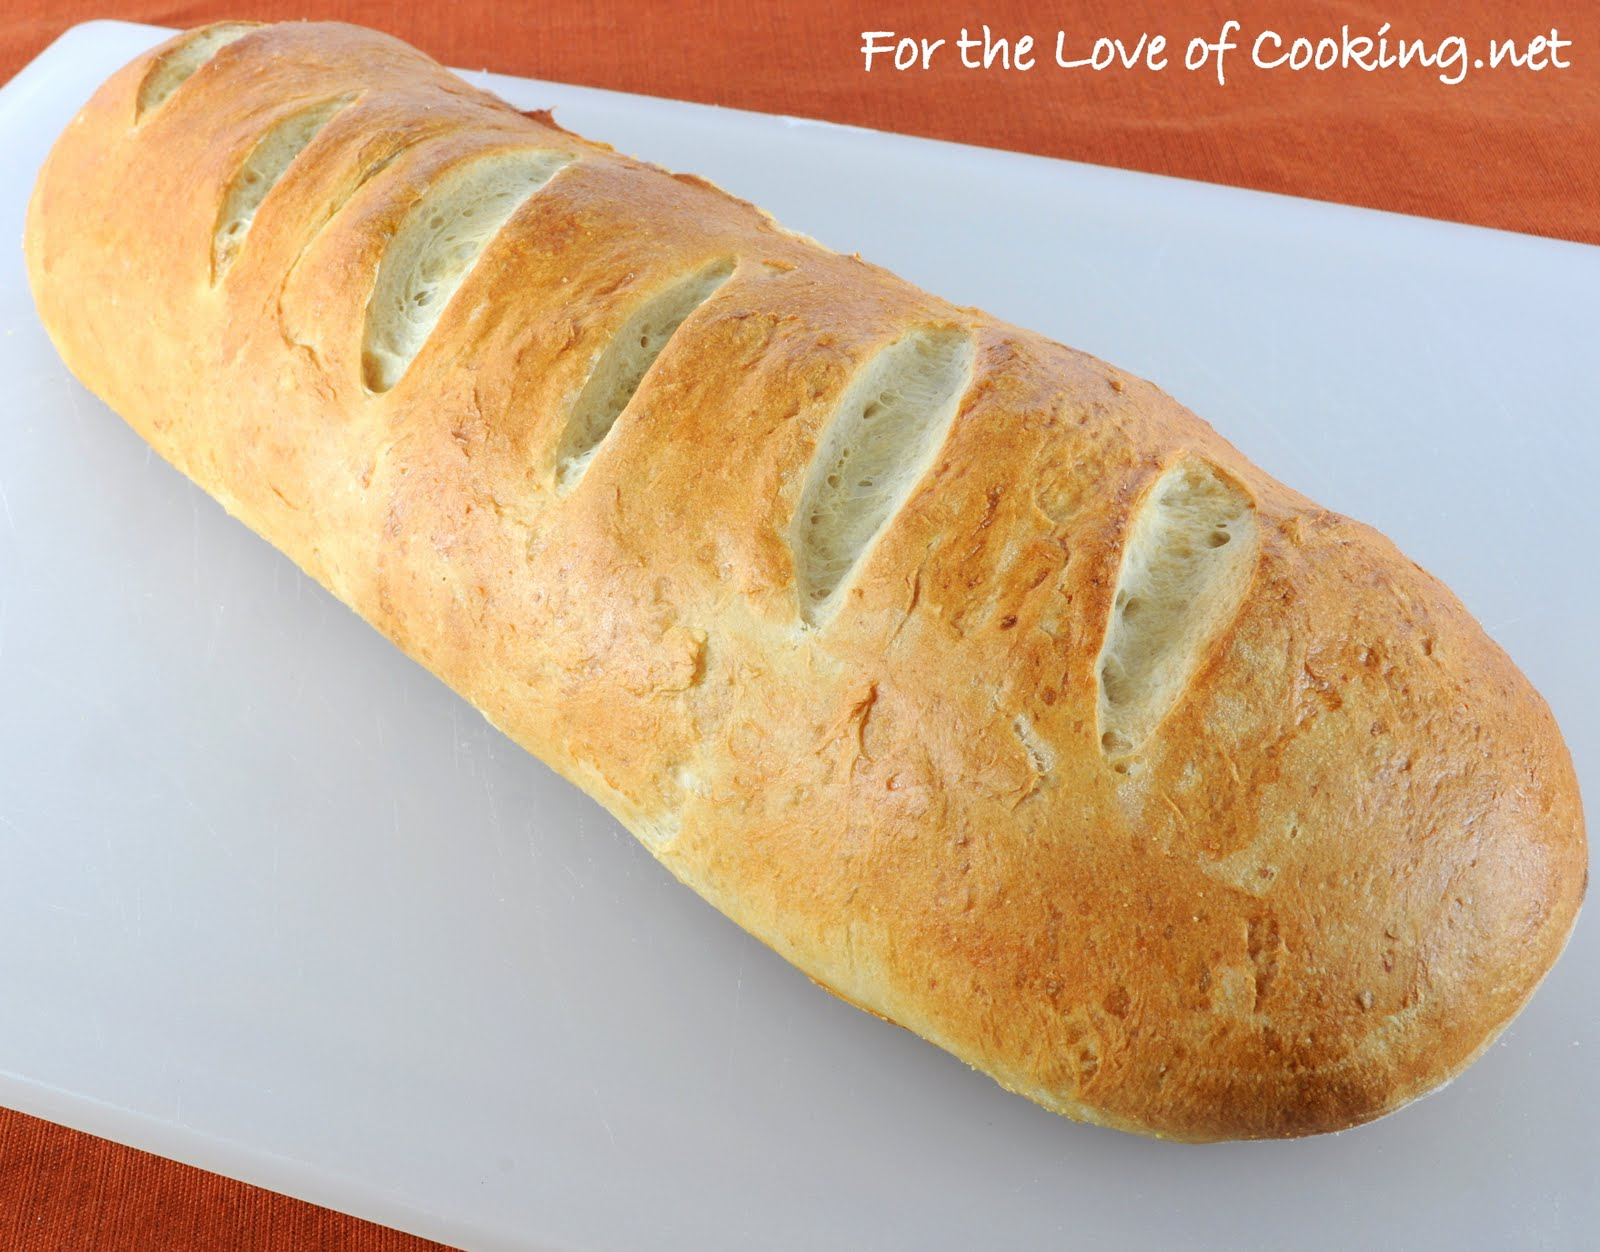 Roasted Garlic French Bread | For the Love of Cooking